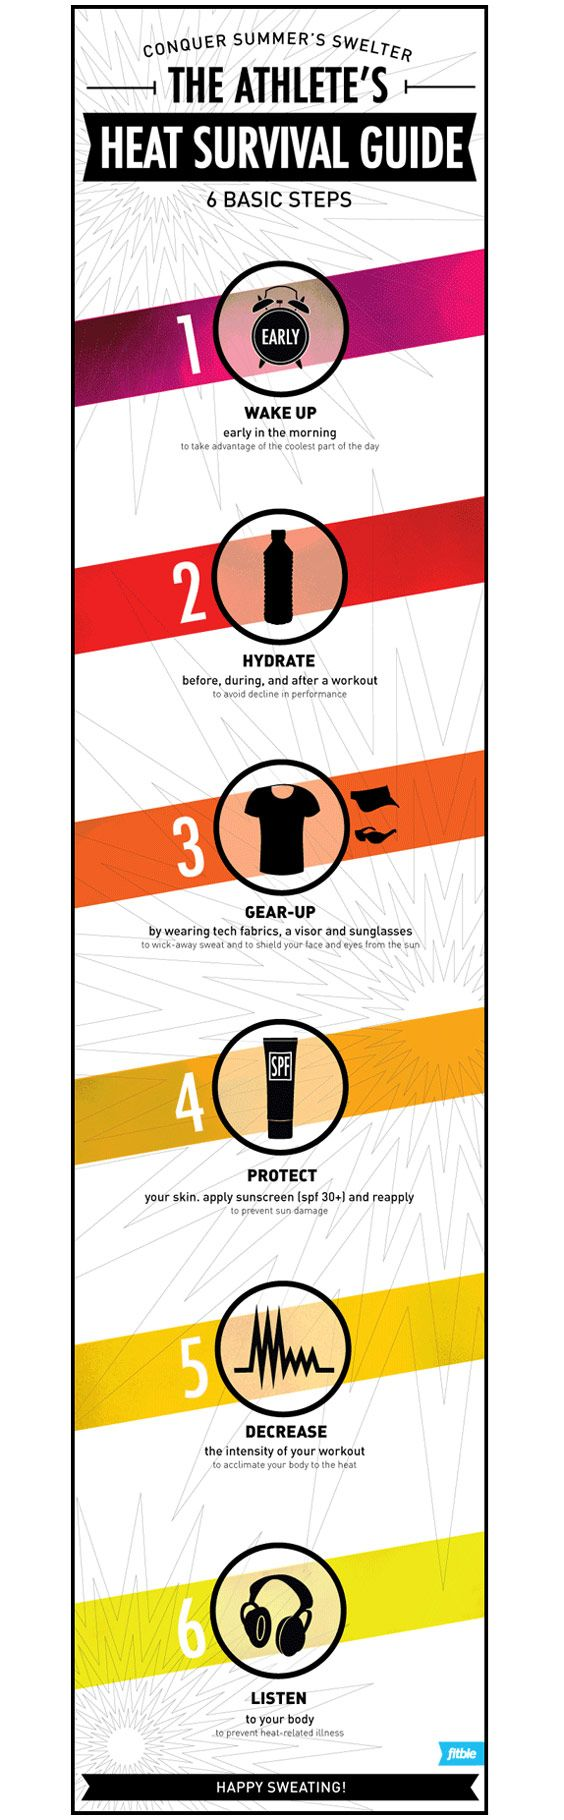 Fitbie Original: I'm melting! Survive the rising temps with our Athlete's Heat Survival Guide.